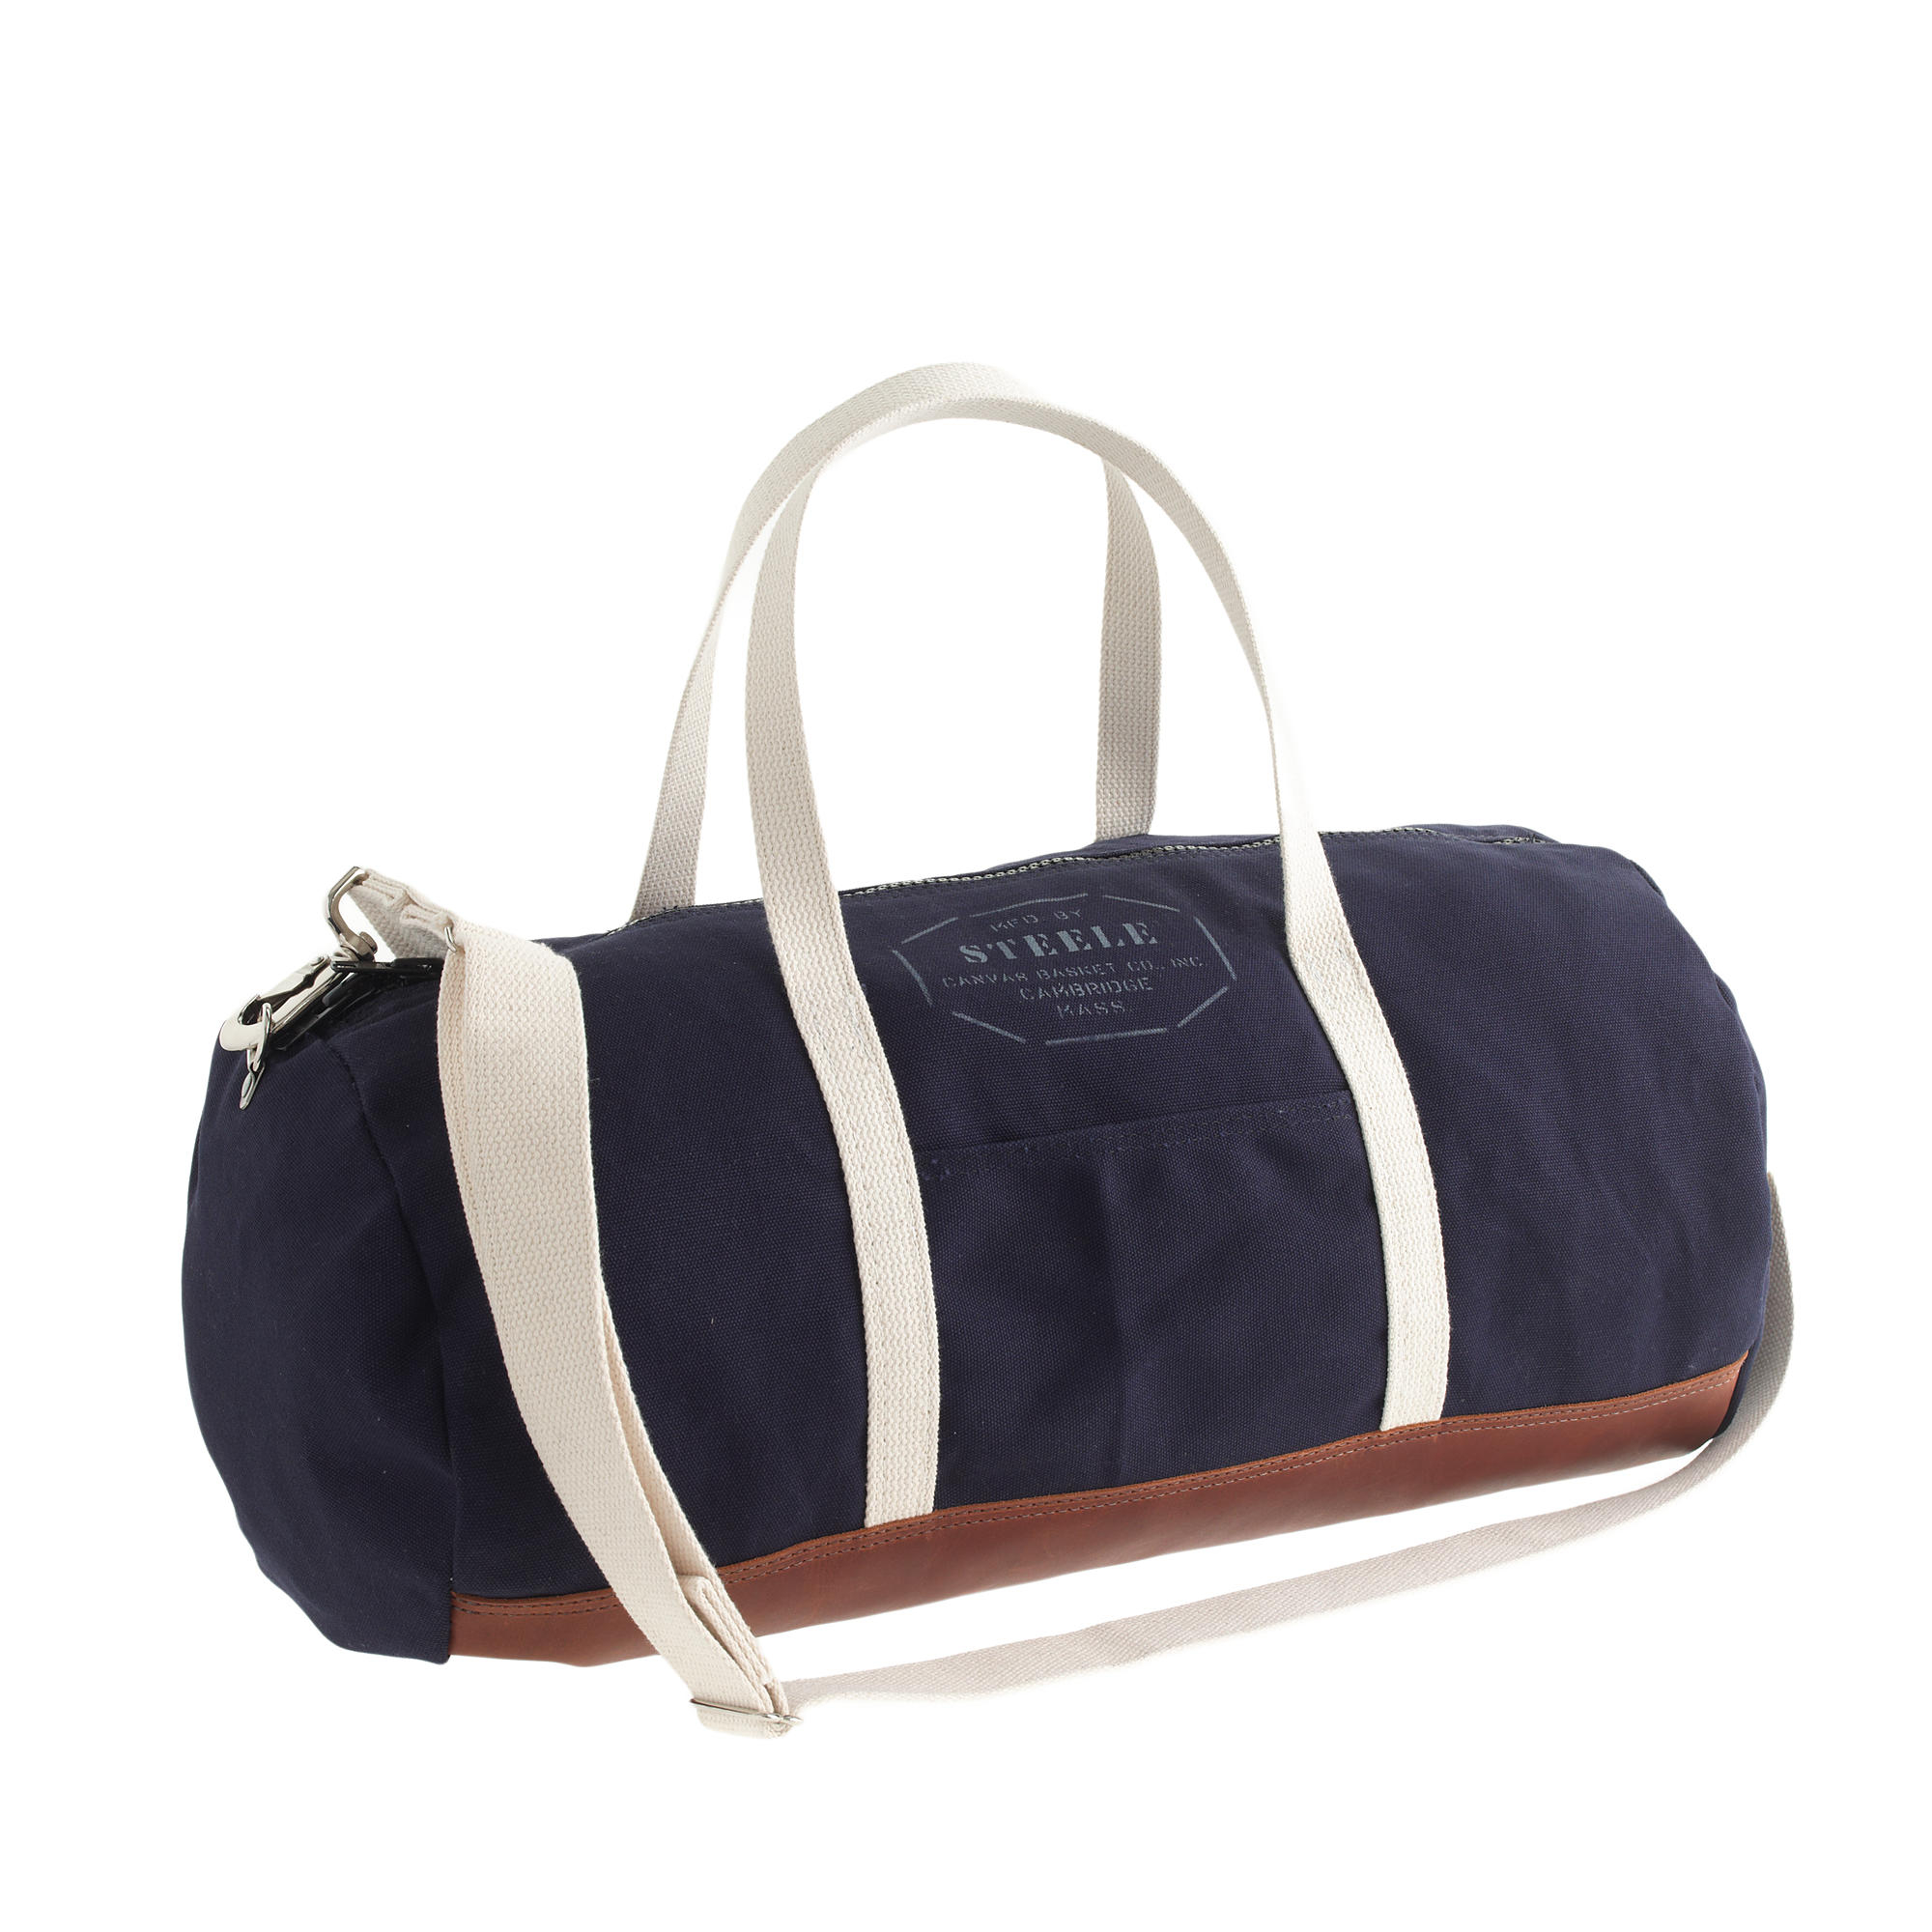 Lyst - J.Crew Steele Canvas Basket Co For Leathertrim Gym Bag in ...